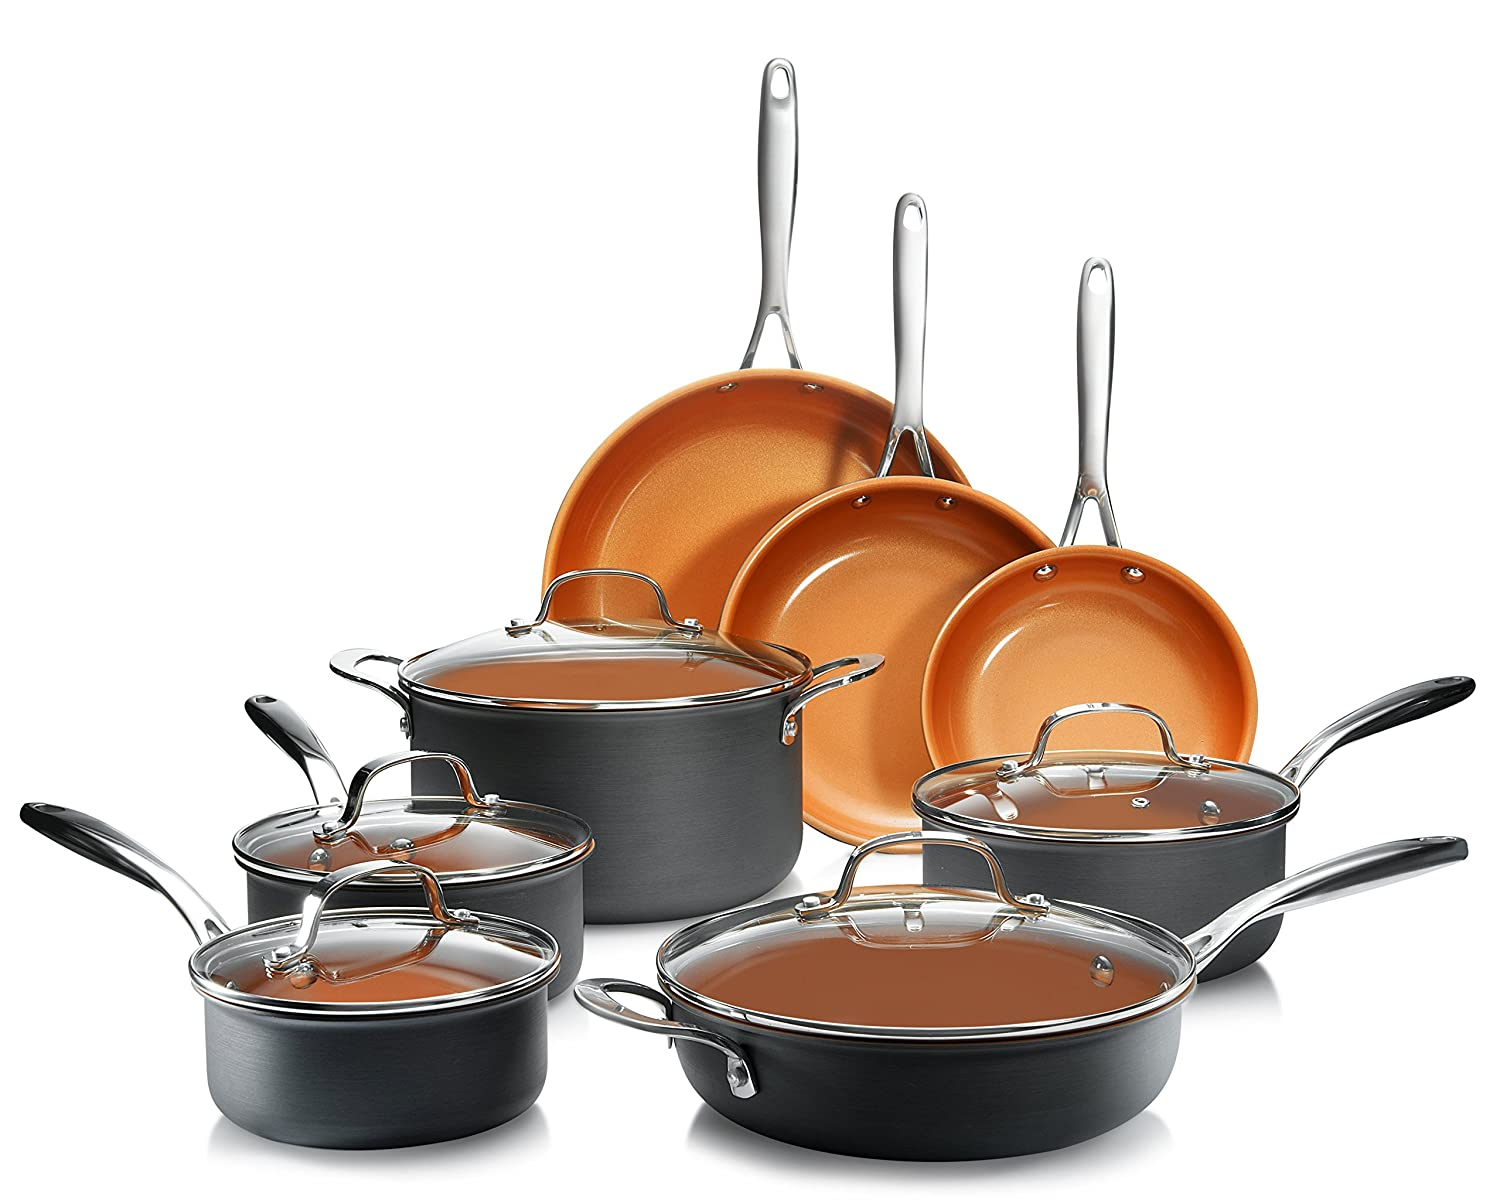 Gotham Hard Anodized Cookware Set